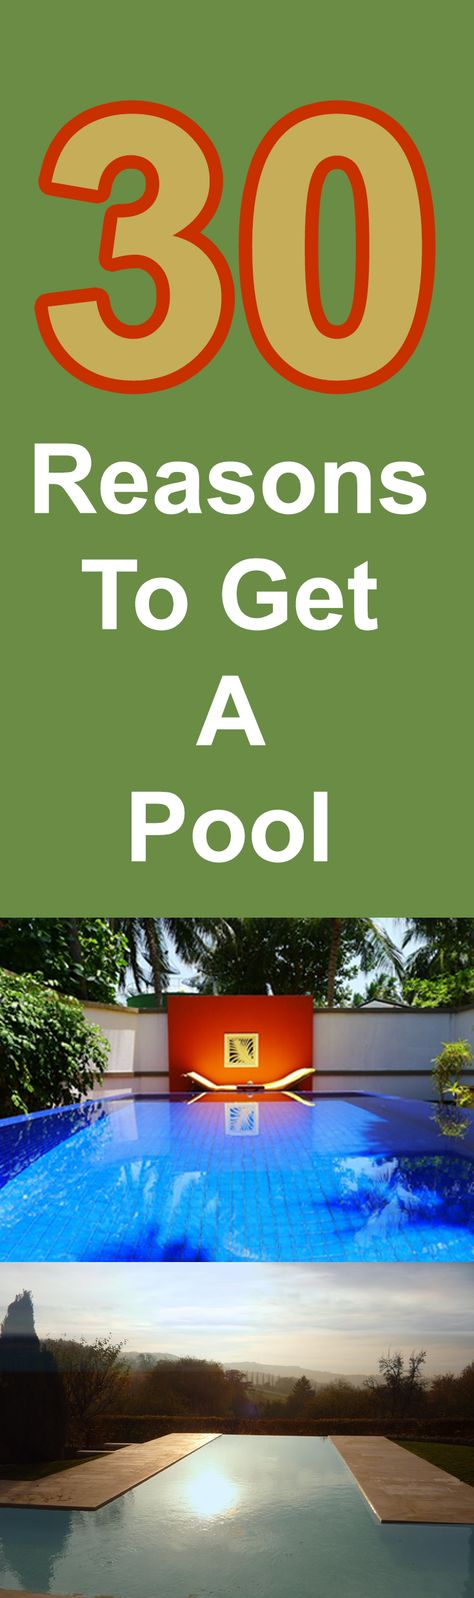 53 Medallion Energy Blog Ideas Pool Heat Pump Pool Heaters Pool Owner